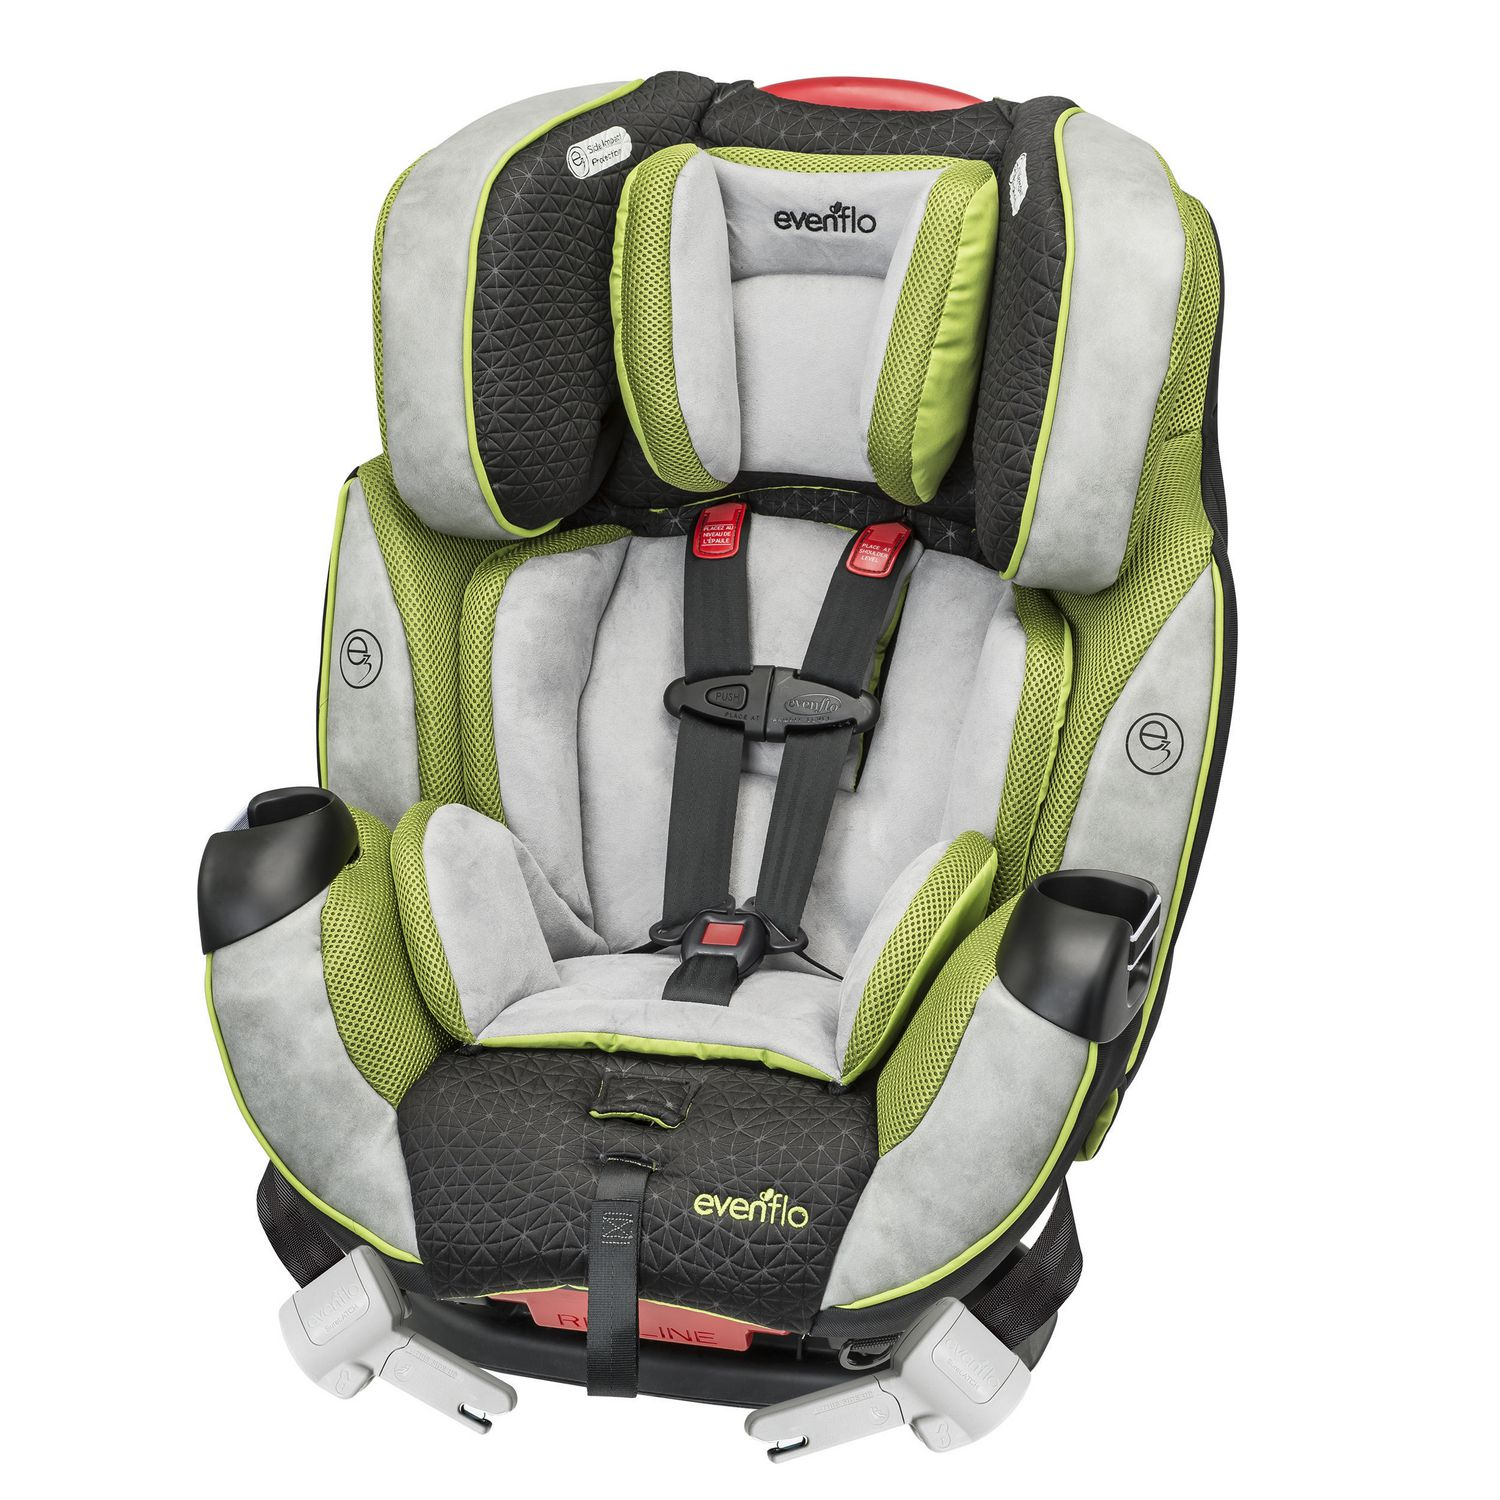 Evenflo Symphony Elite Porter All In One Car Seat